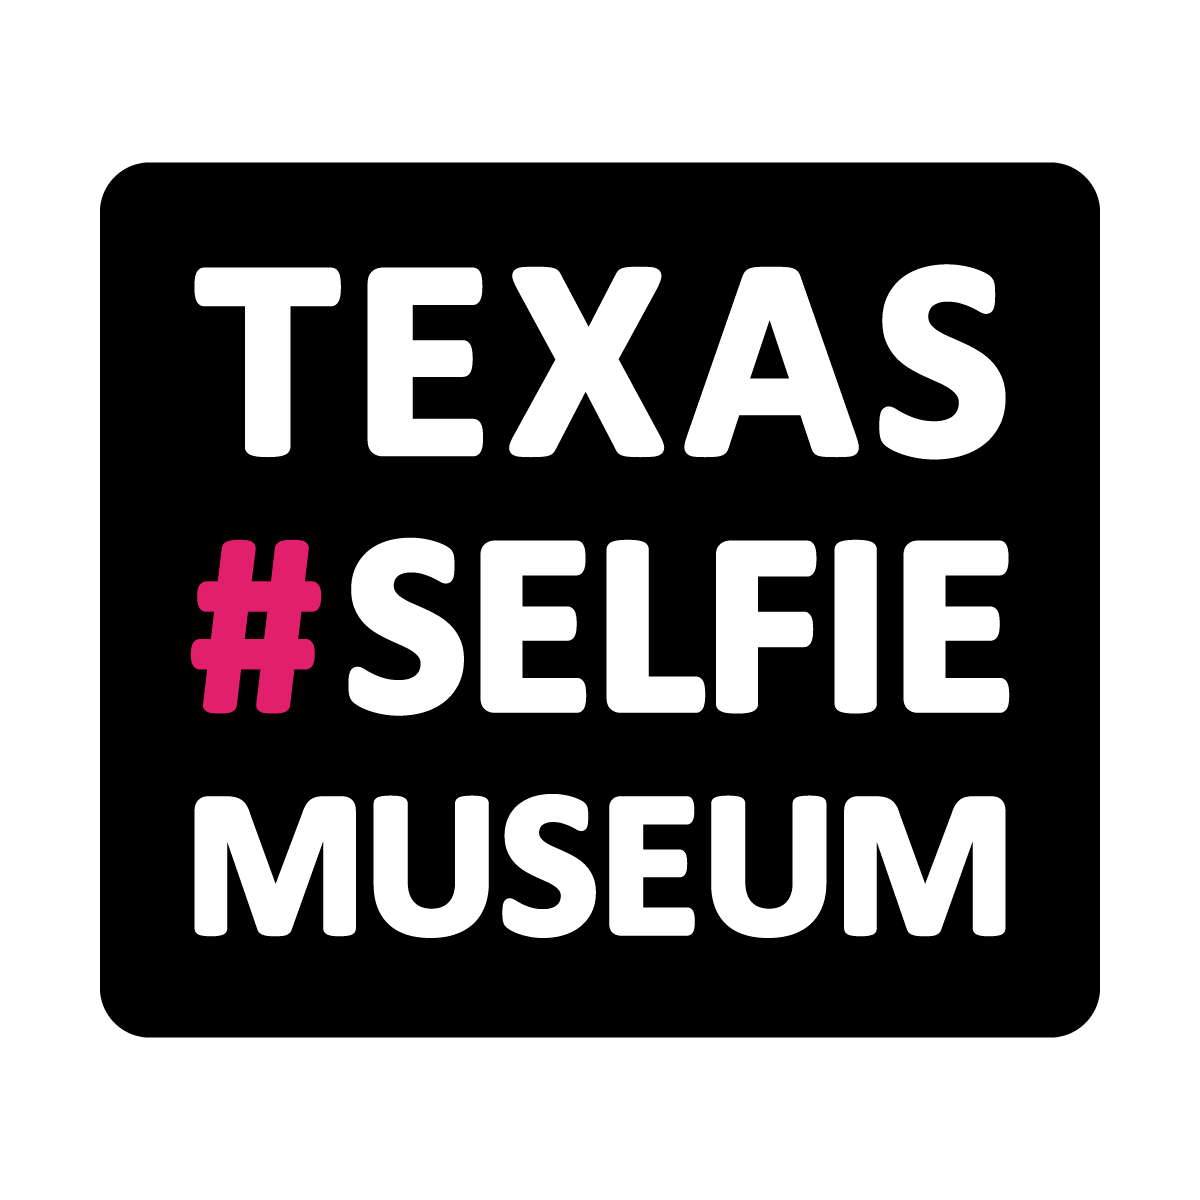 Texas Selfie Museum Announces Launch of San Antonio Studios with Picture-Perfect Background and Set Design